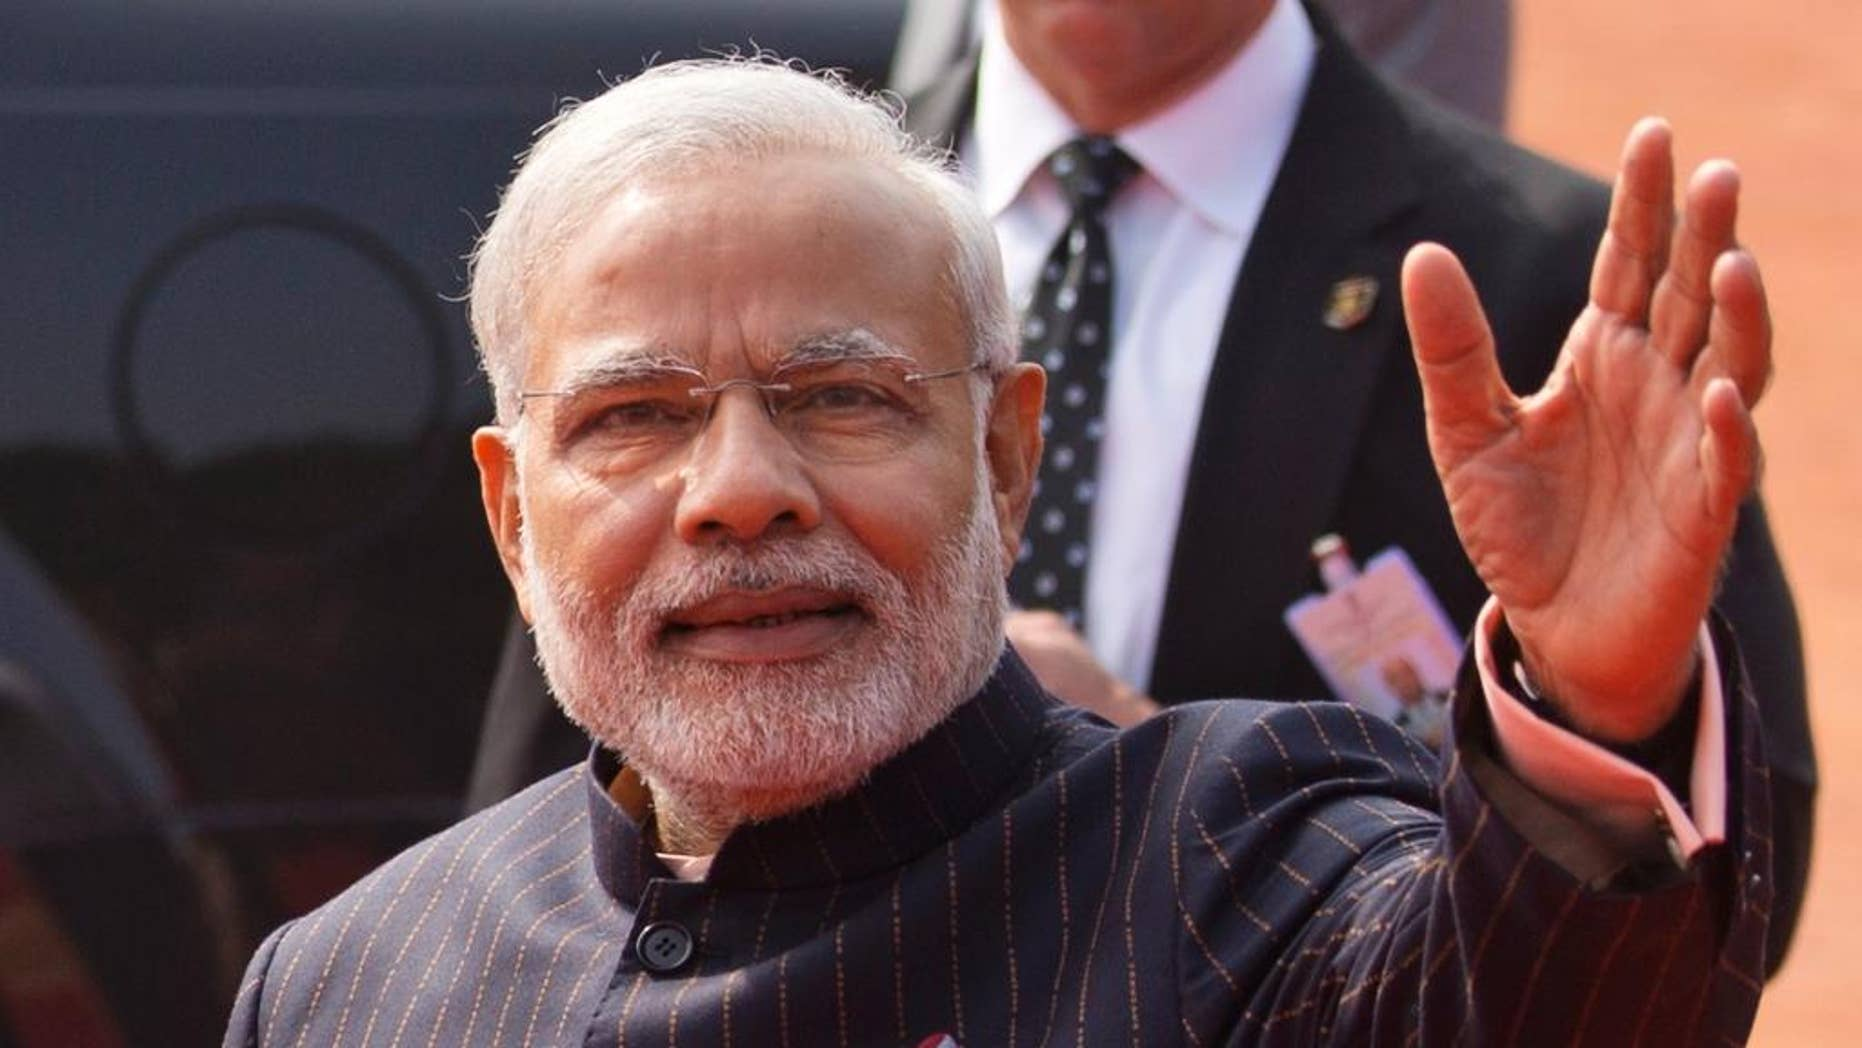 Jan. 25, 2015: Indian Prime Minister Narendra Modi waves during a reception for President Obama in New Delhi.